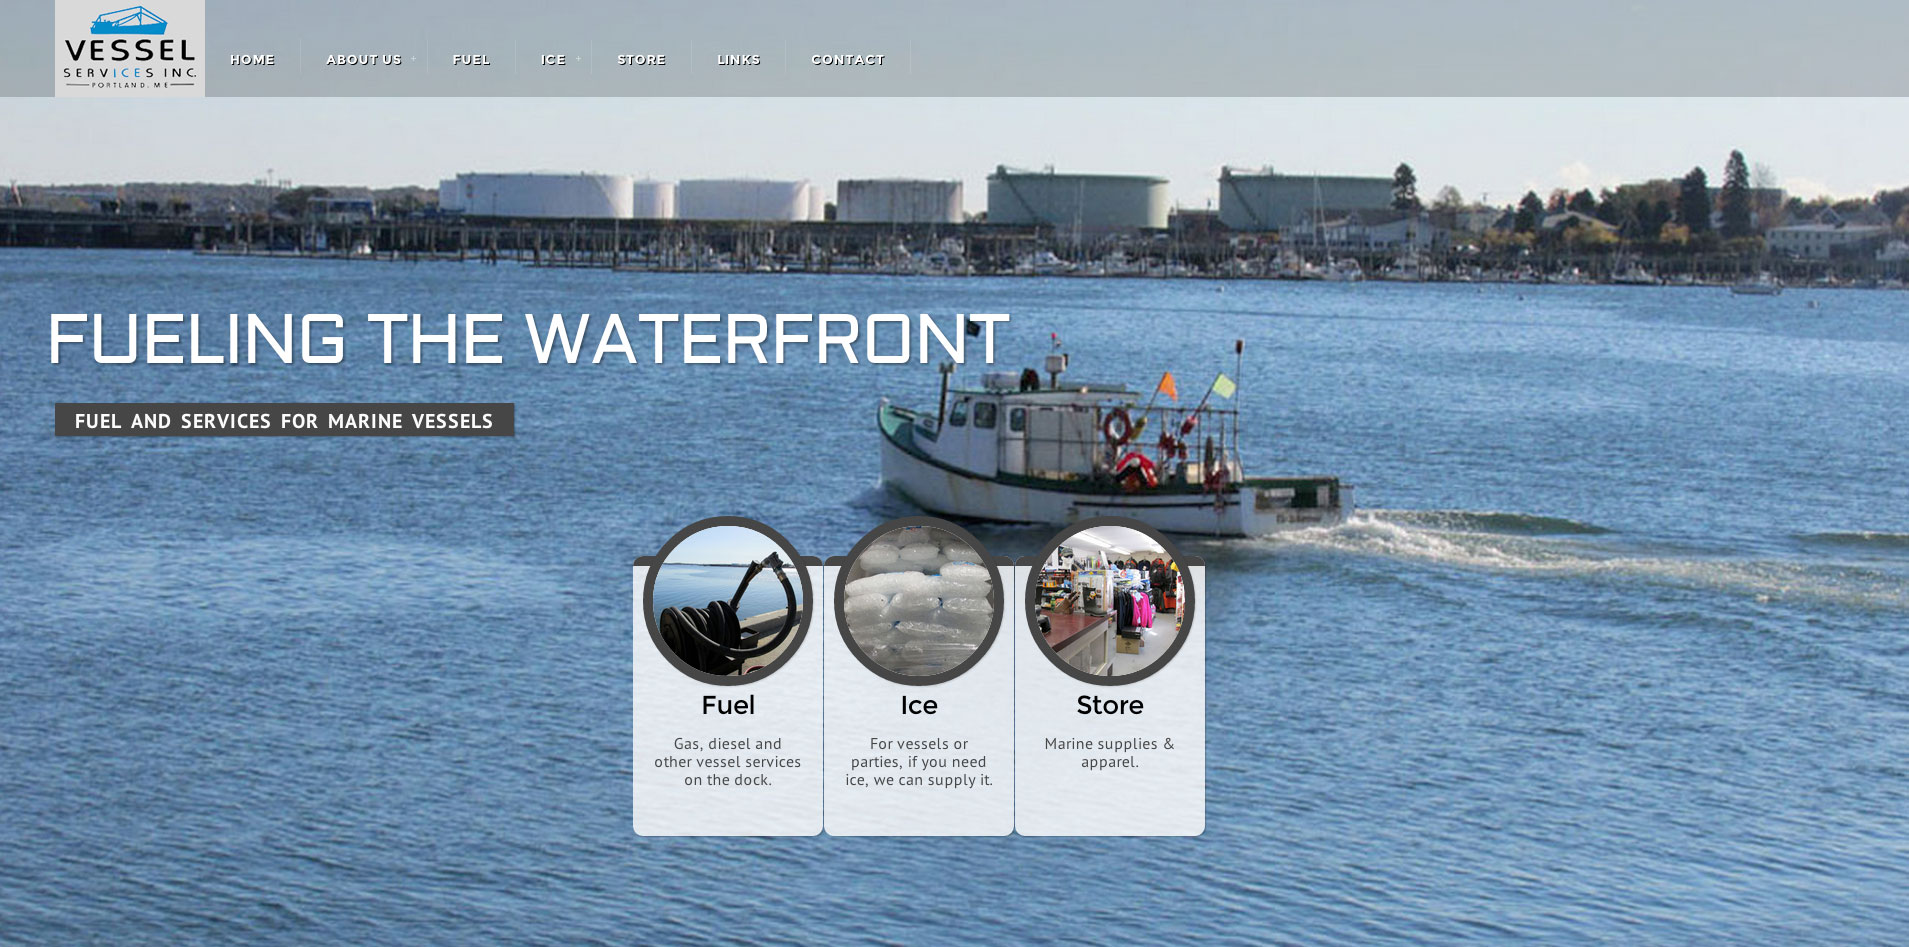 Vessel Services Website Home Page 1